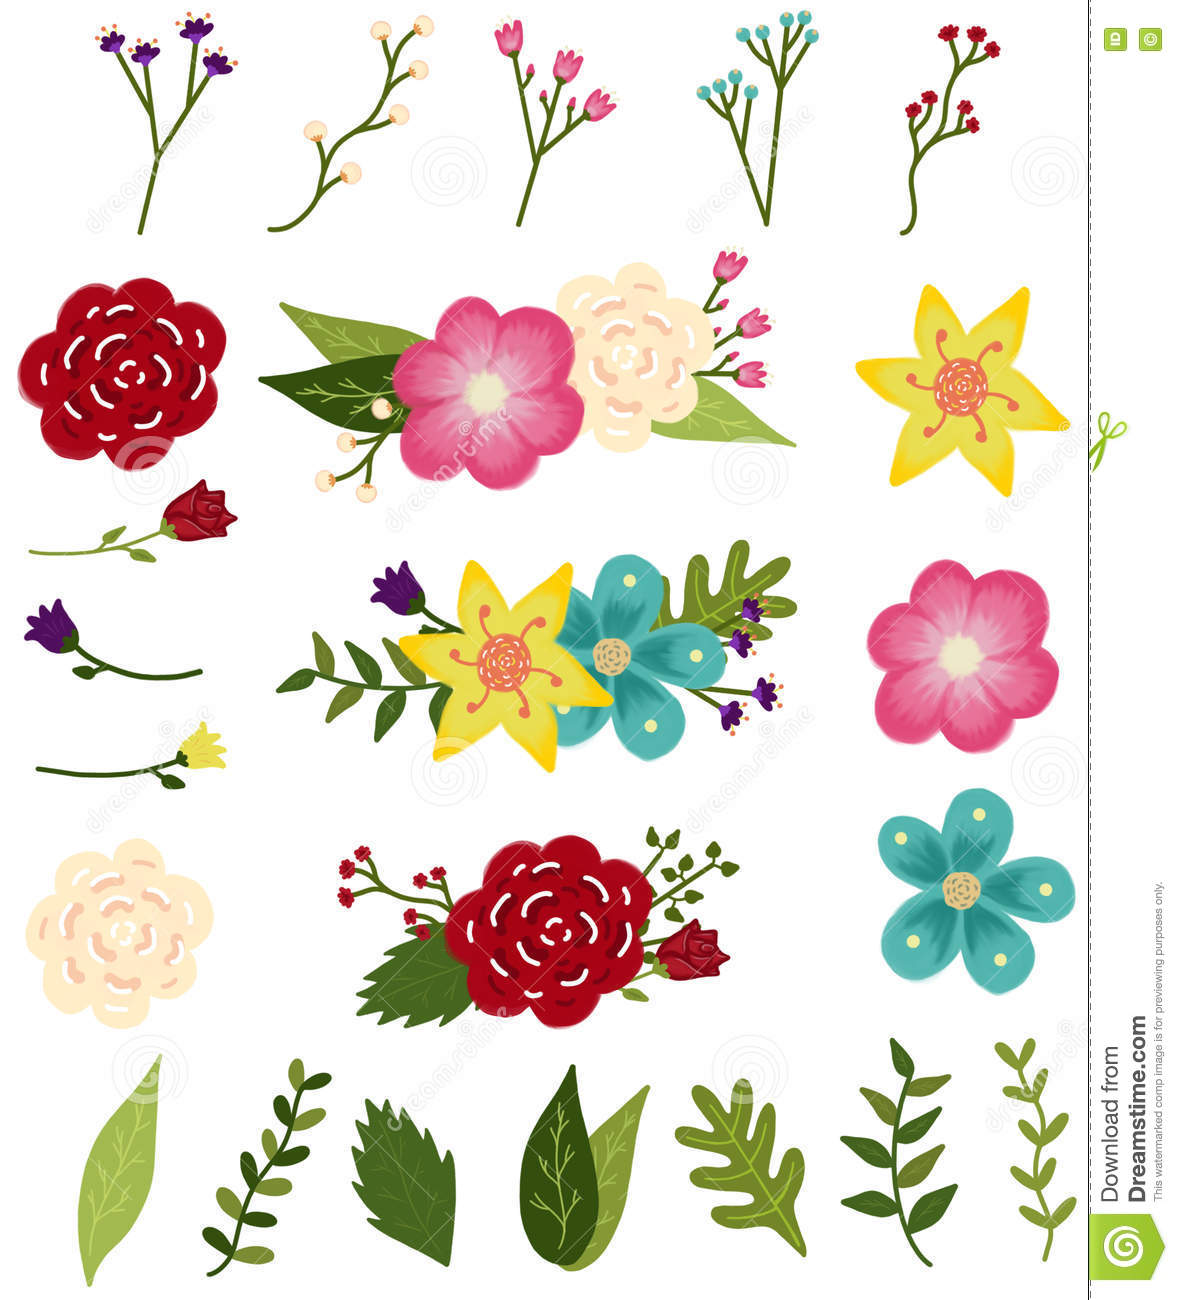 Editable Flower Designs Stock Vector Illustration Of Drawn 77315897